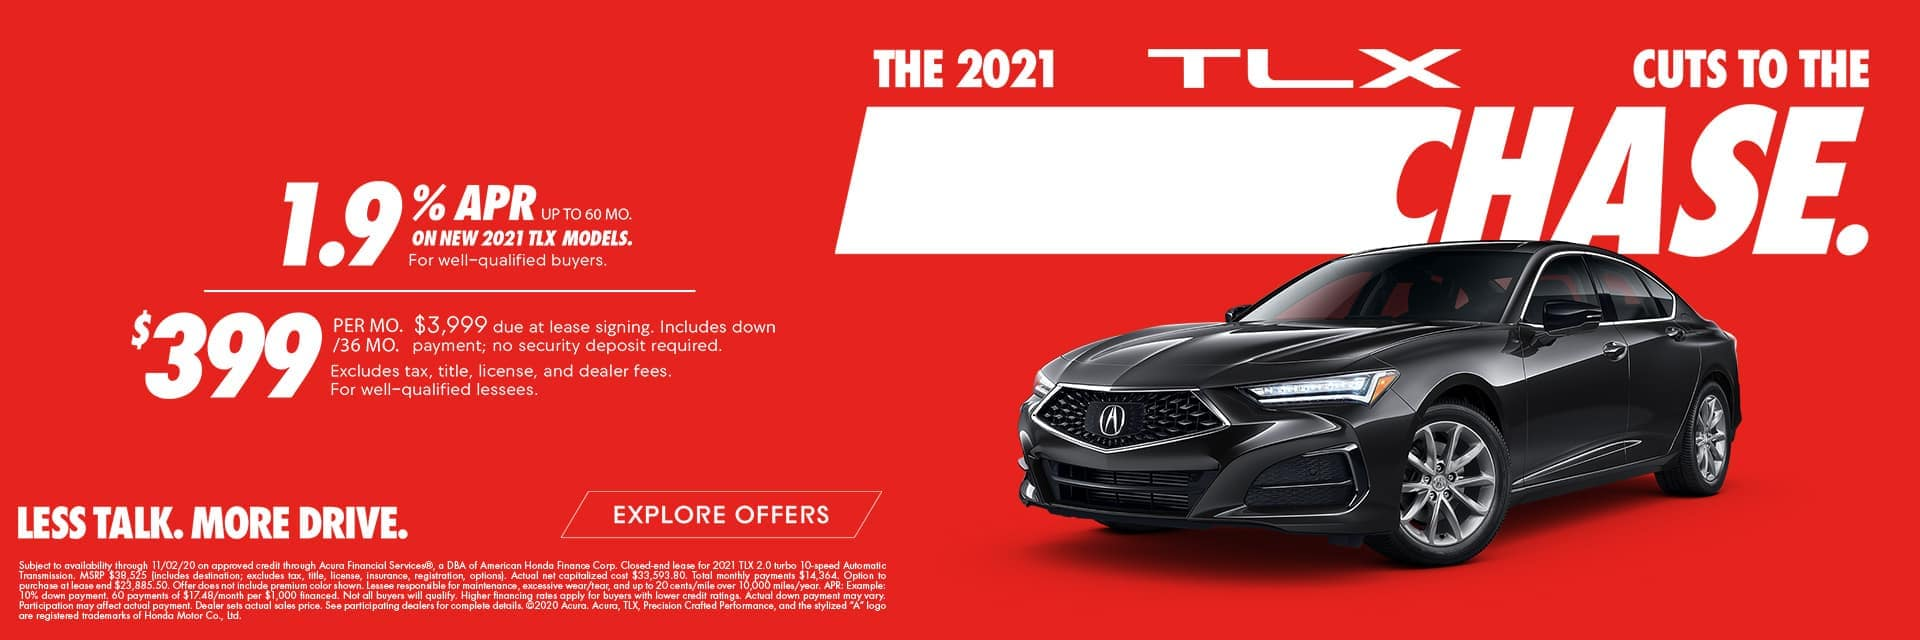 20-11447869_MY21_TLX_Launch_ADDP_Red_GM_Base_Lease_APR_r02_1920x640